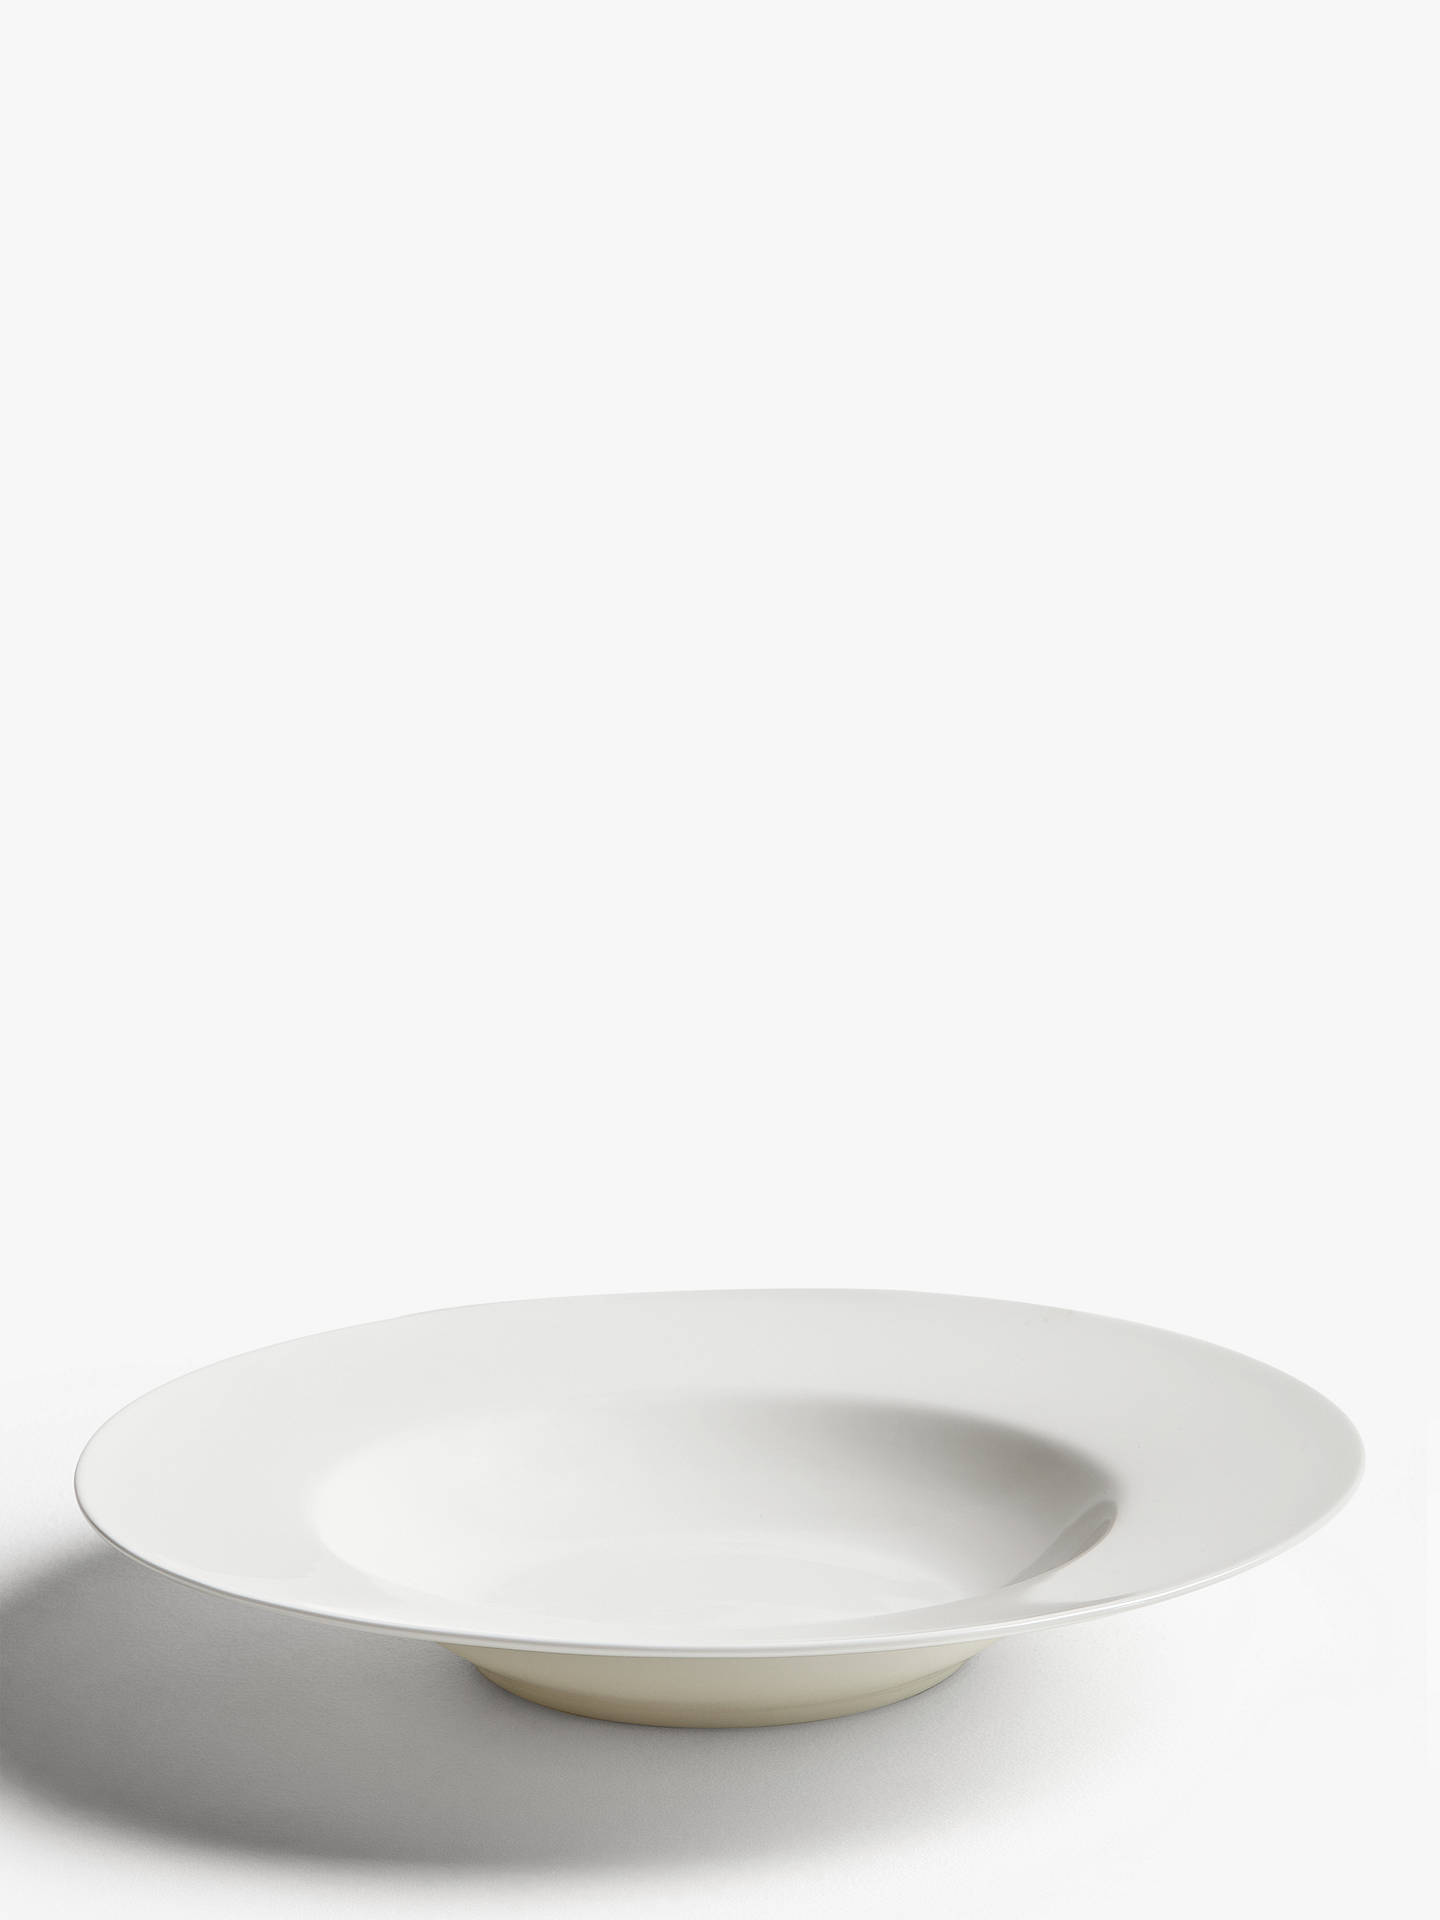 Buy John Lewis & Partners Rim Bone China Pasta Bowl, 28.8cm, White Online at johnlewis.com